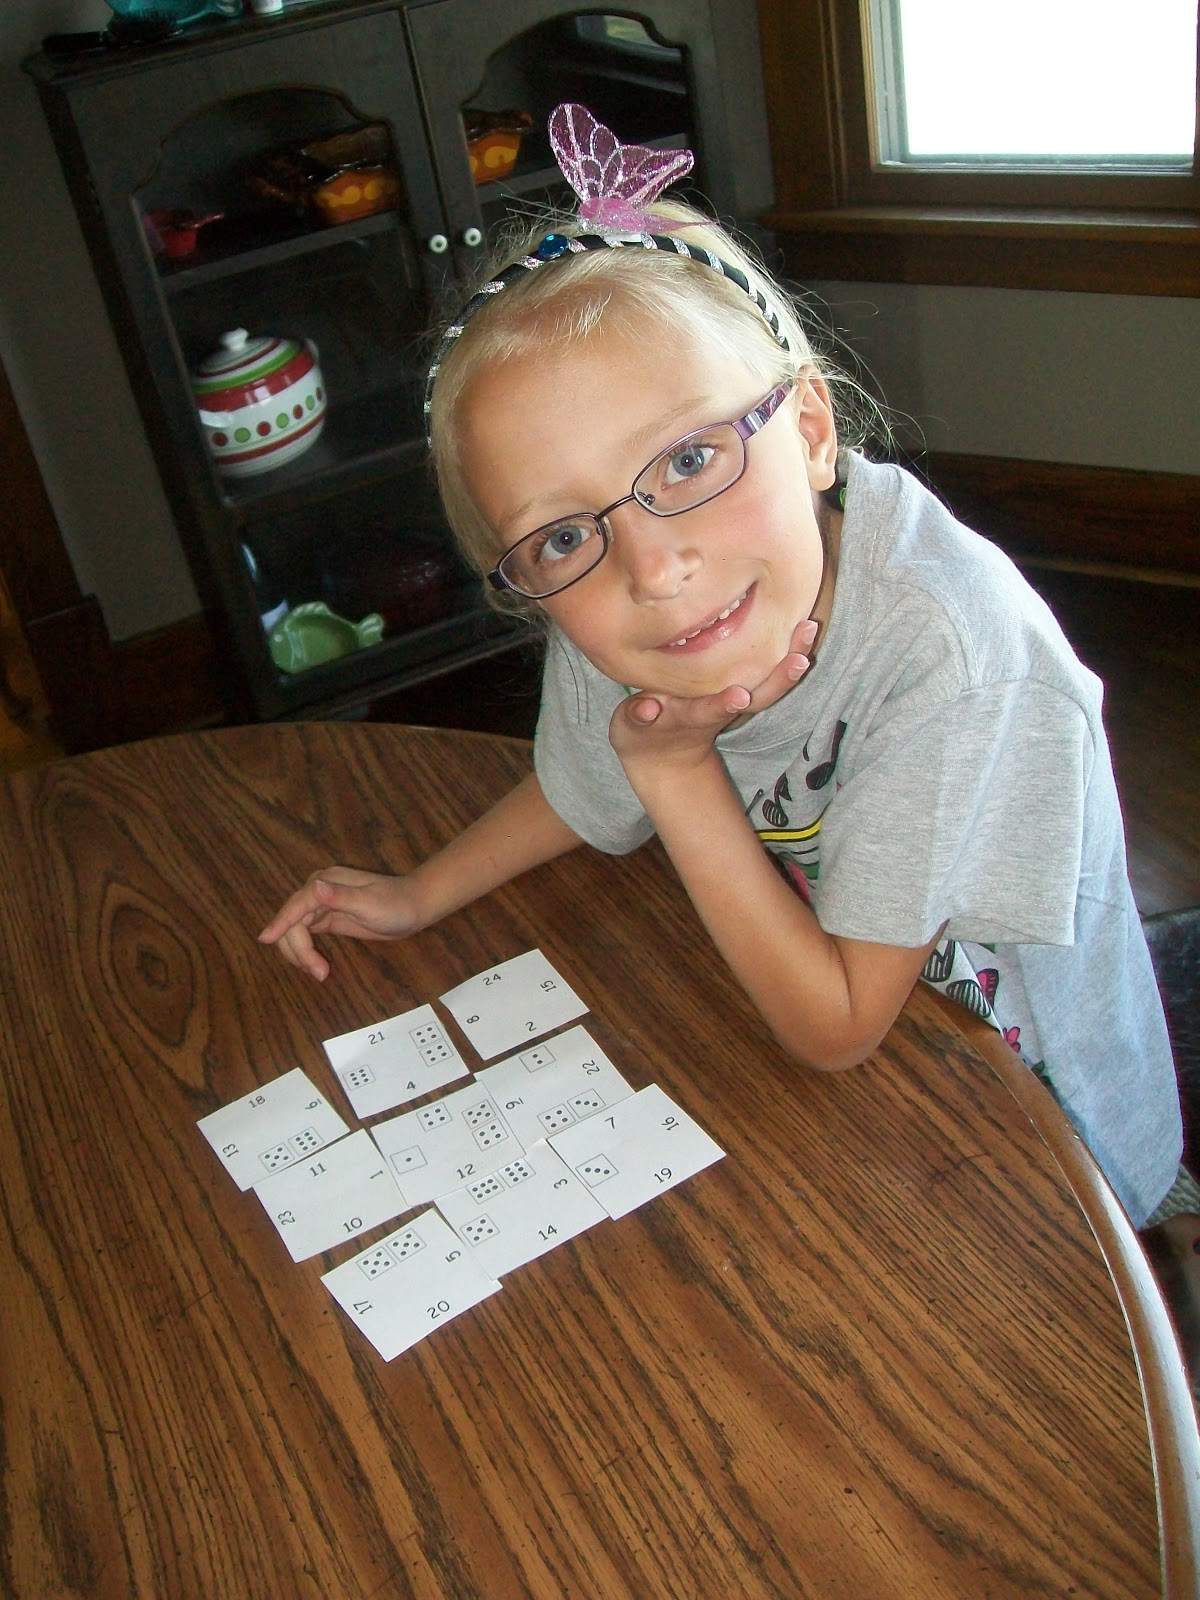 How To Use Magic Square Puzzles